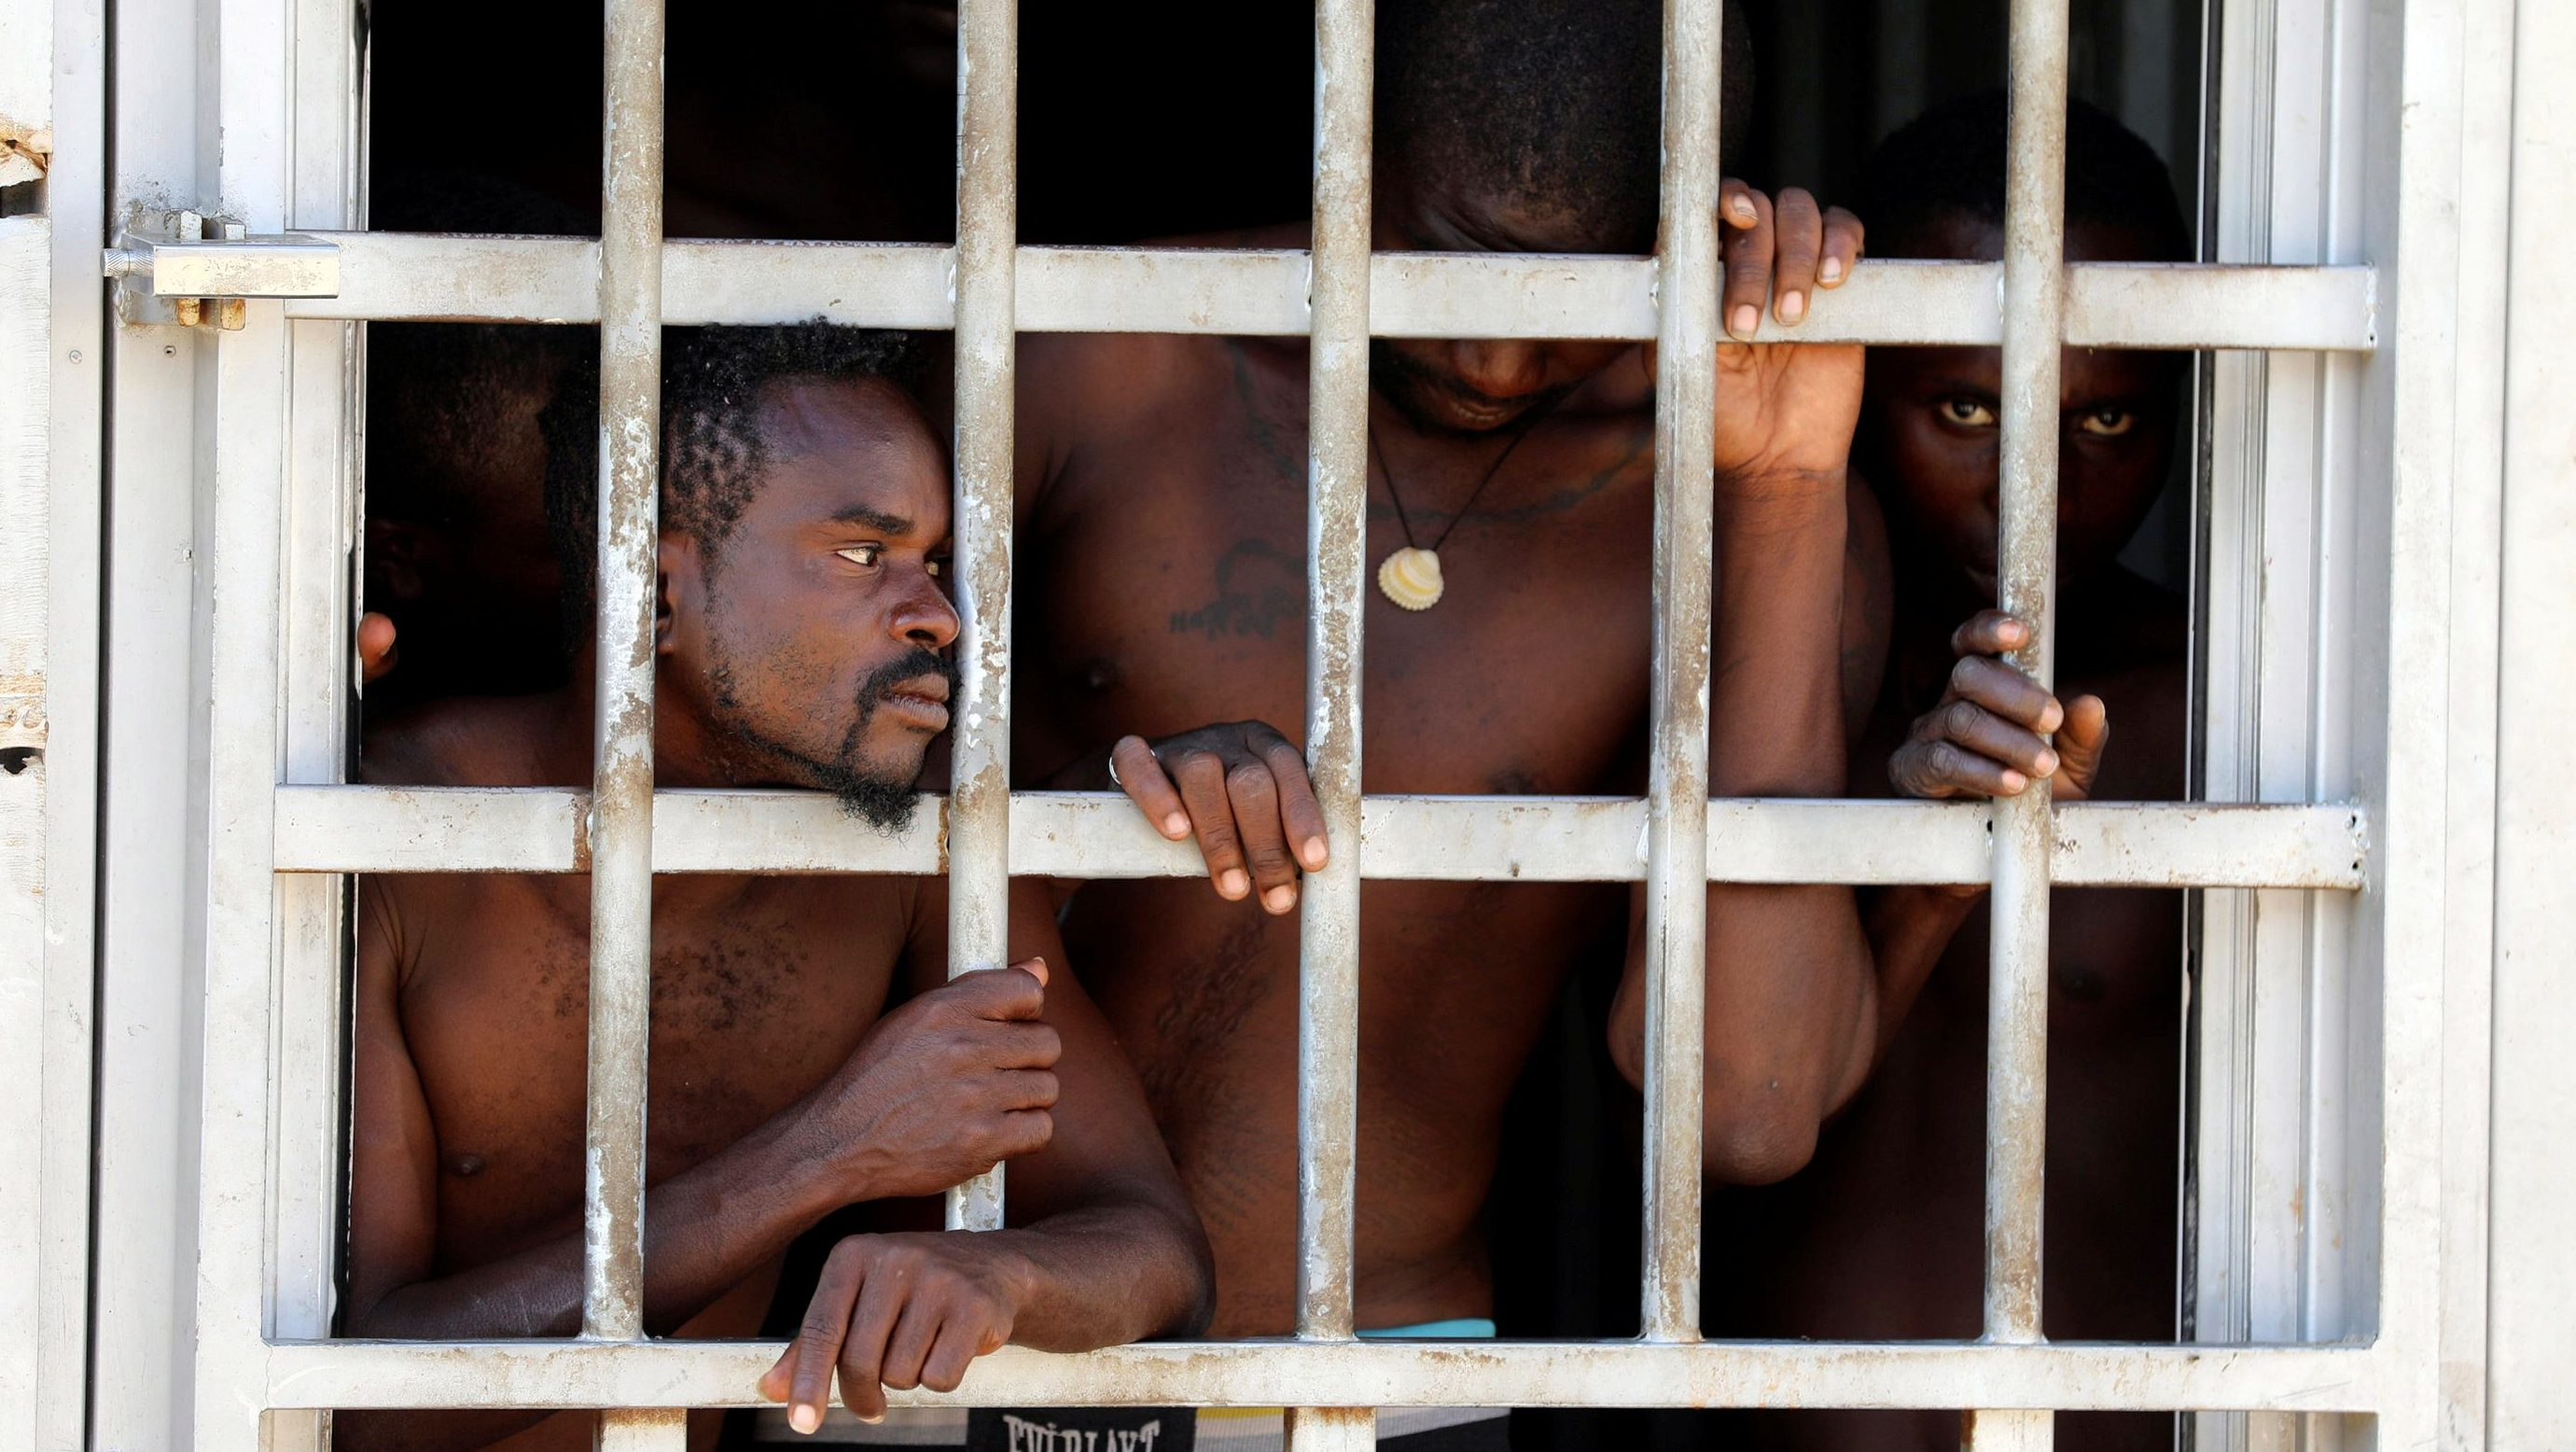 Africa now has world's highest rate of modern-day slavery — Quartz Africa